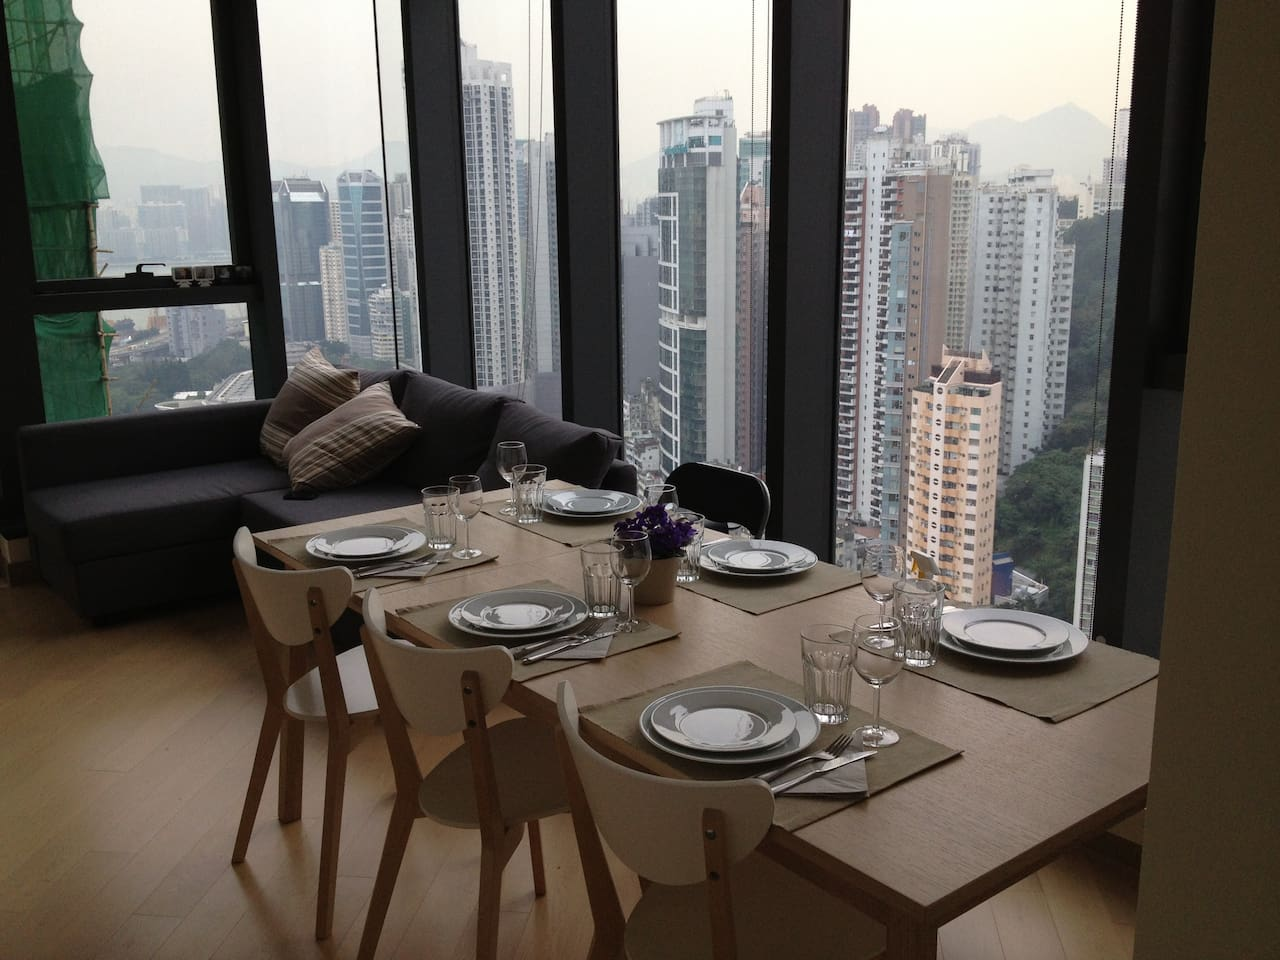 Great open views for breakfast, lunch or dinner